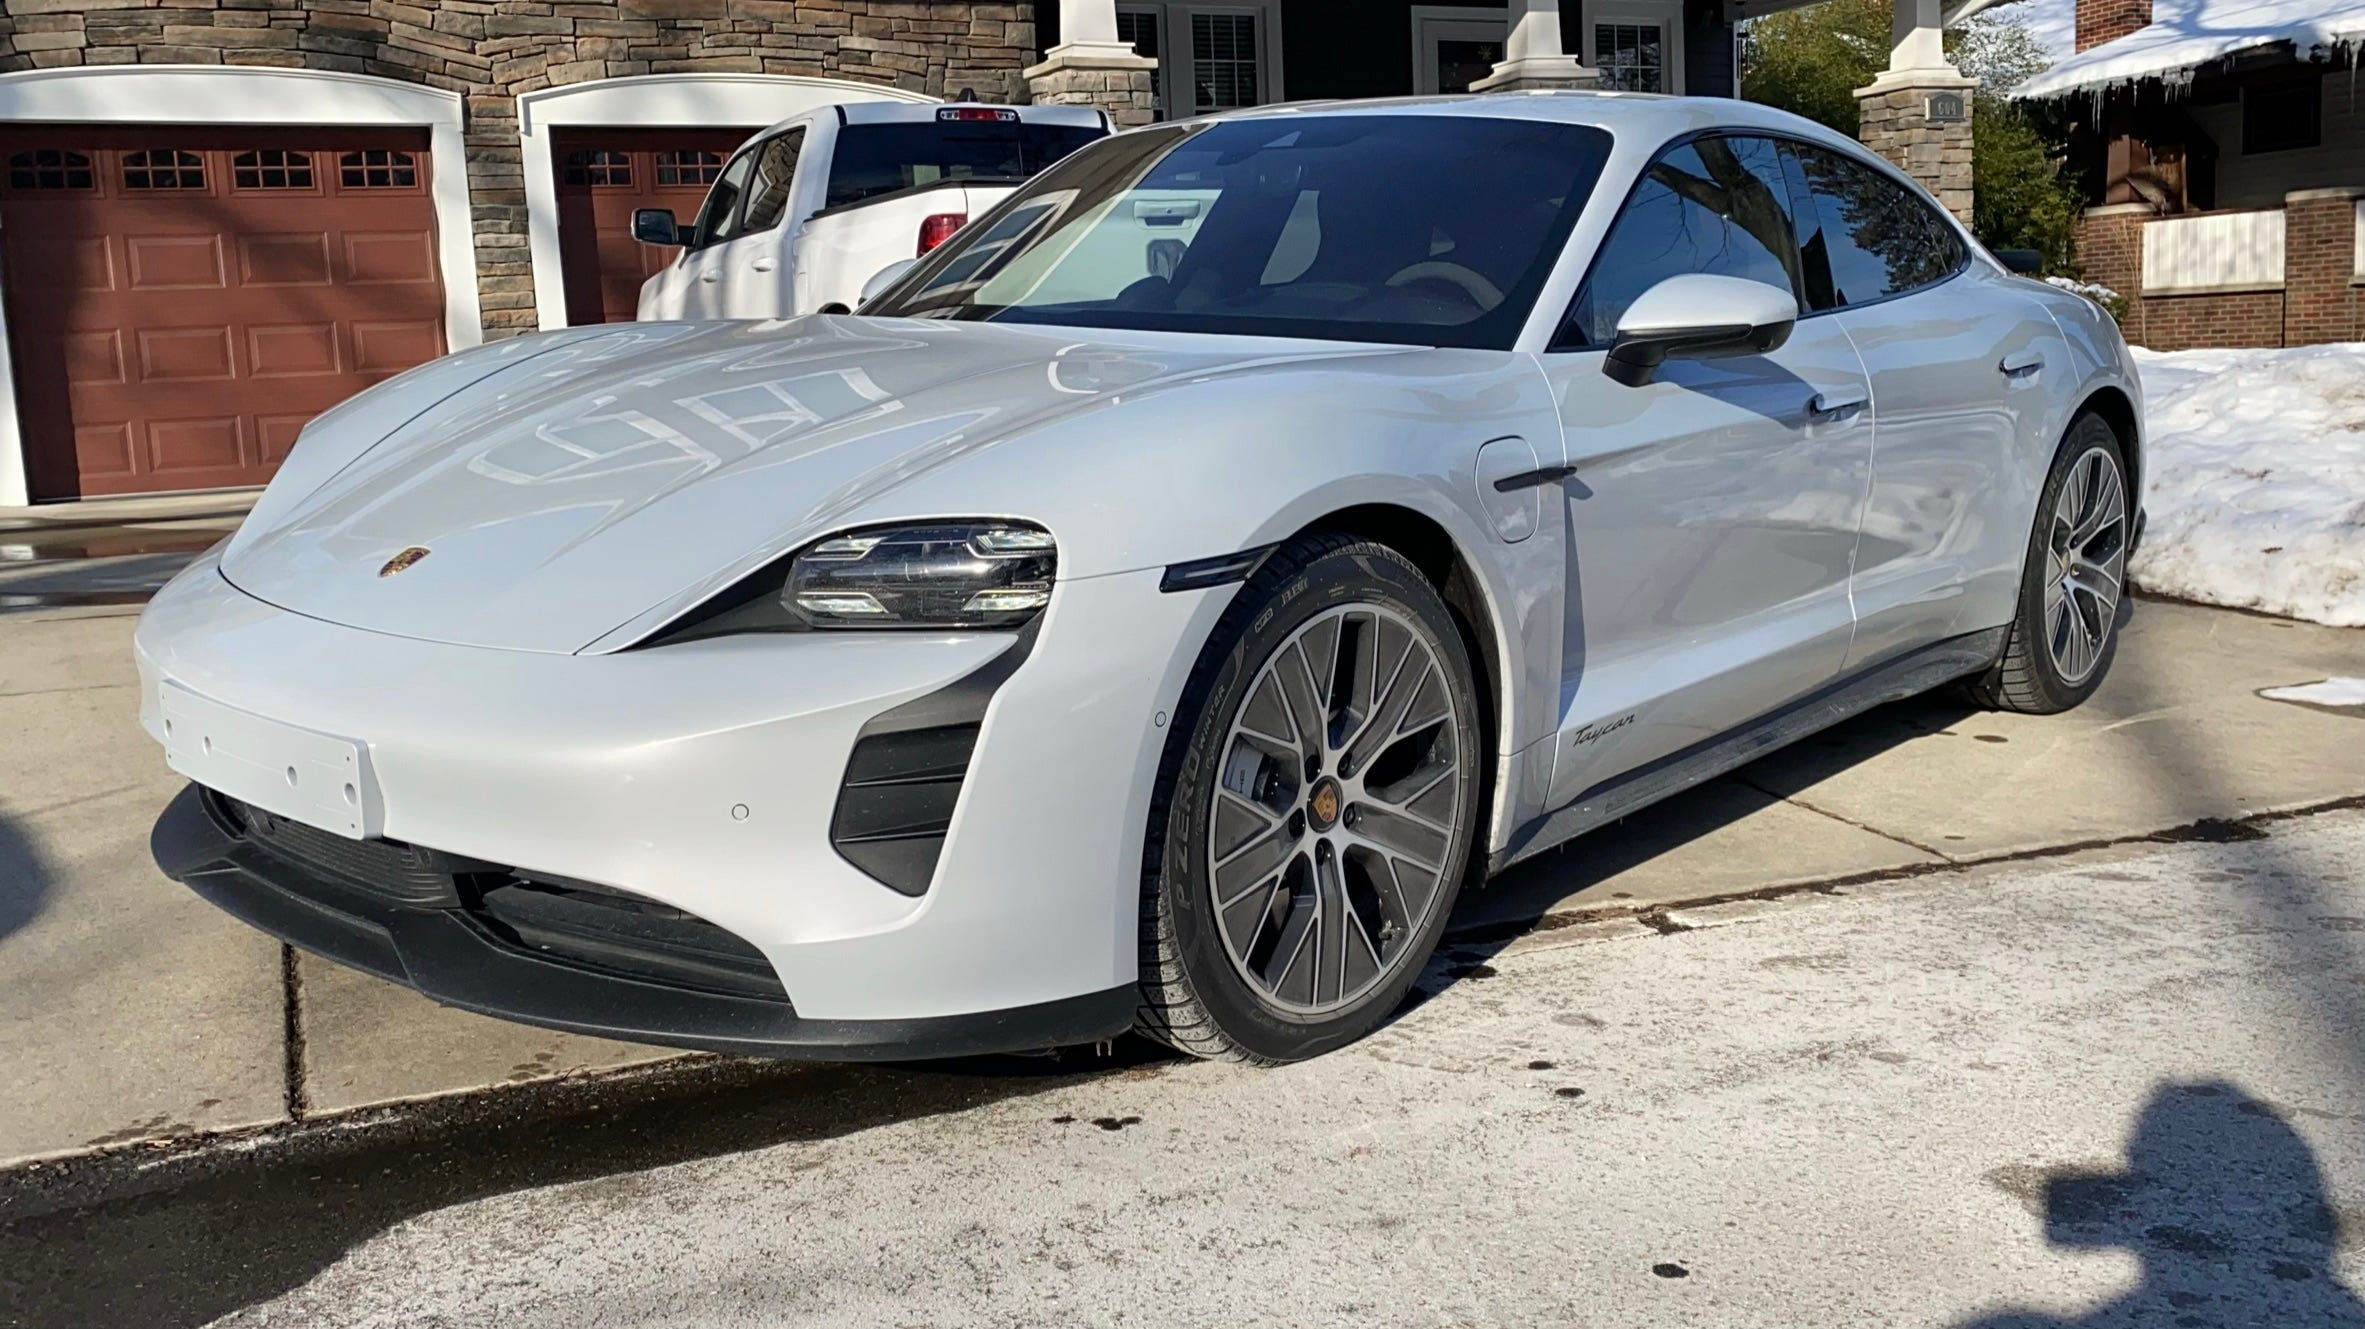 2021 Porsche Taycan RWD erases most differences between electric and gasoline vehicles